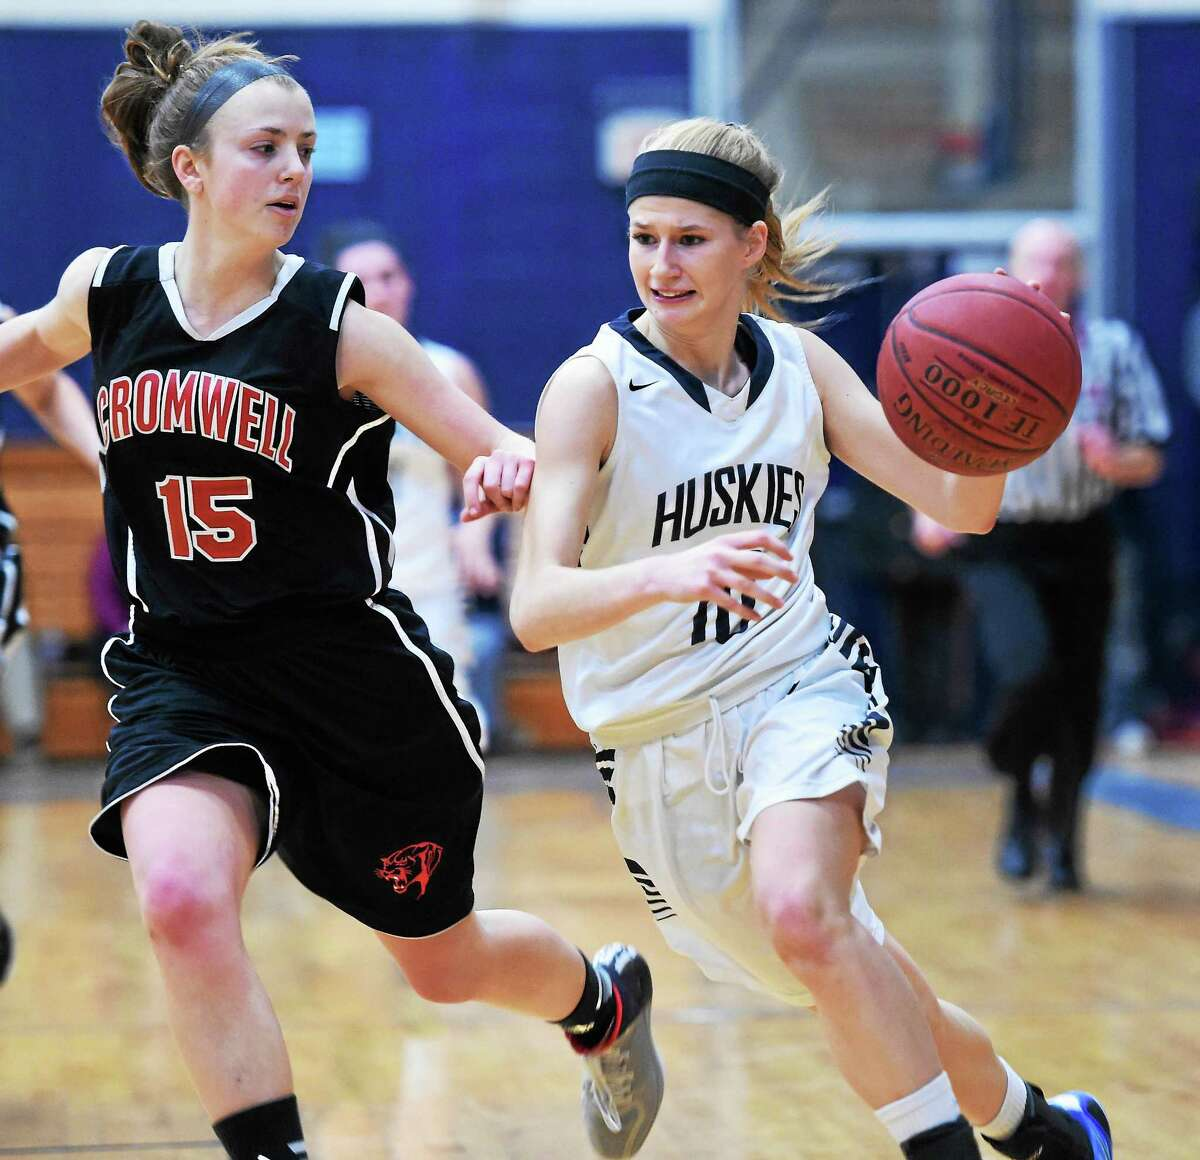 Catherine Avalone - New Haven RegisterCromwell's Emma Belcourt defends Morgan's Sami Ashton in a SLC contest last season. The Panthers and Huskies are both ranked in the Top 10 in the GameTimeCT/Register preseason poll.